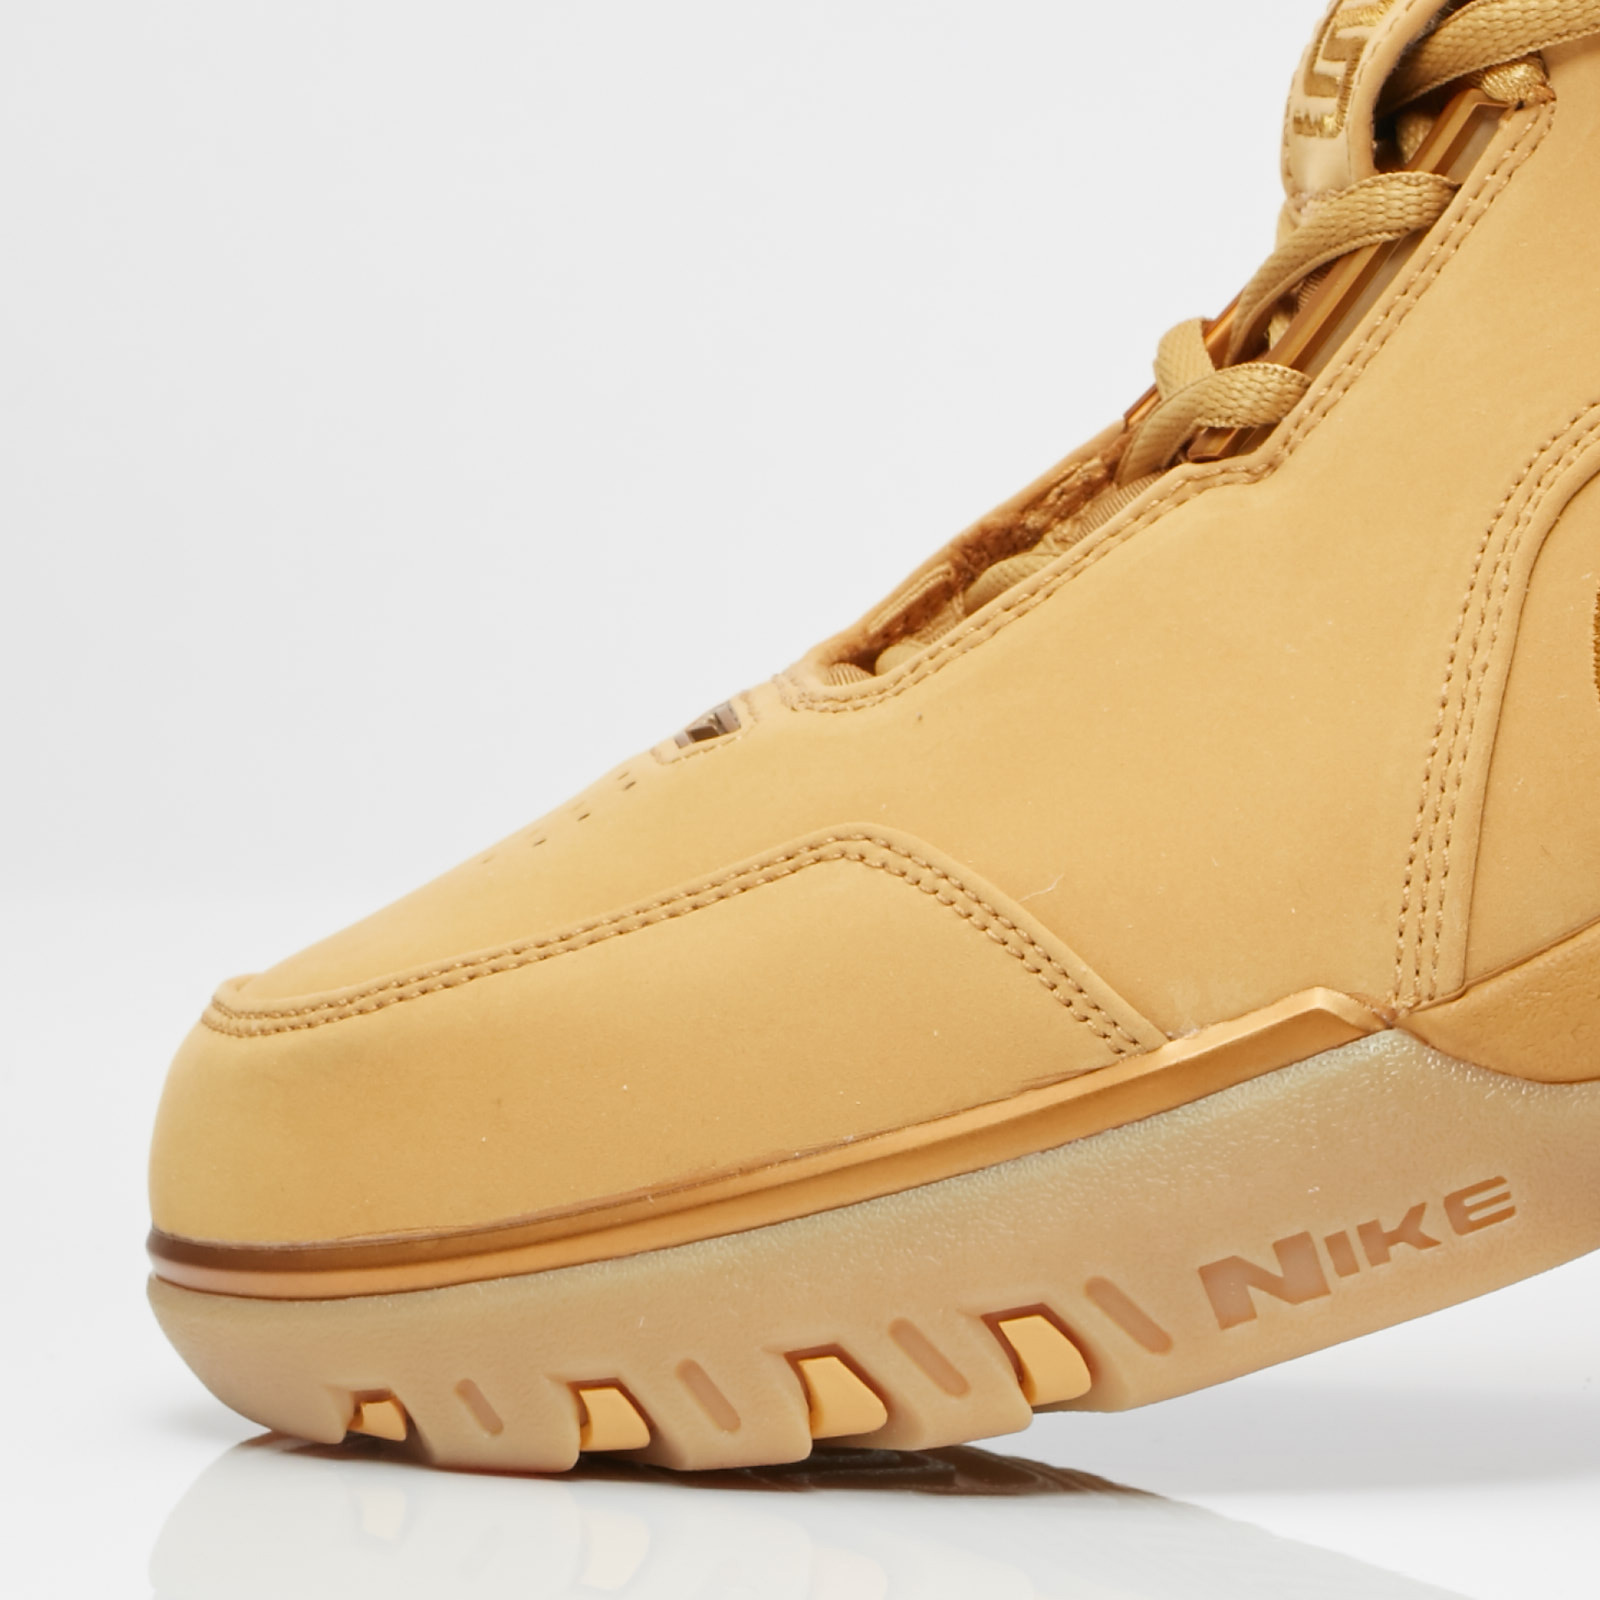 Details about Nike Air Zoom Generation ASG QS AQ0110 700 FLAX OG Lebron James 1 2 WHEAT MEN 8